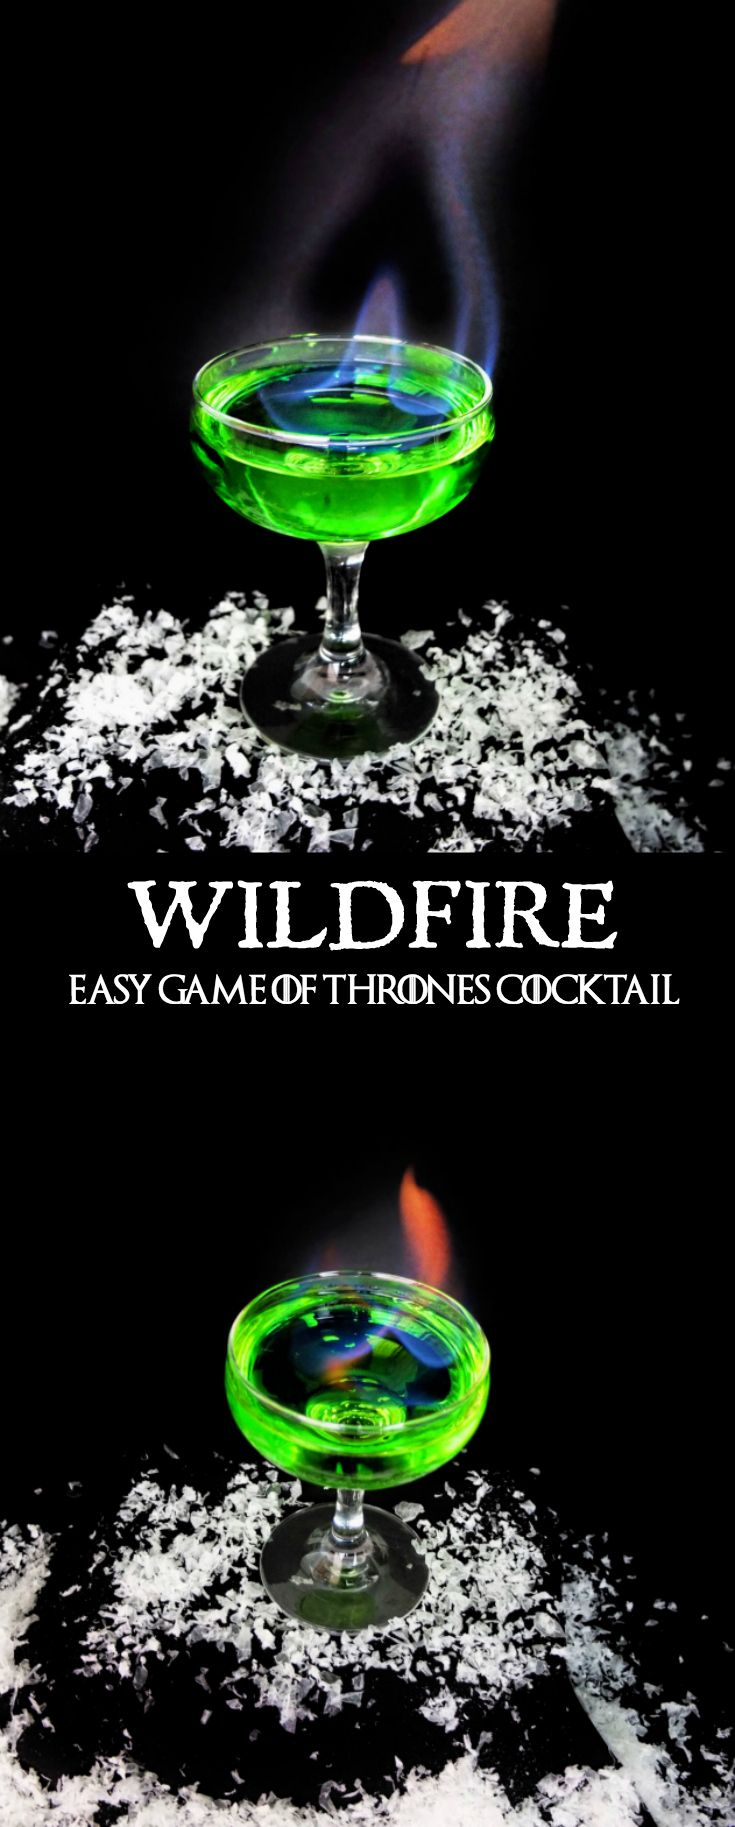 A flaming Game of Thrones inspired cocktail for your next Game of Thrones viewing party! Inspired by the green explosive Wildfire used in the show. This easy Game of Thrones cocktail is caught fire with Bacardi 151 rum and sweetened by using a mix of Midori and Watermelon Vodka to make a melon martini so good you might explode. // www.elletalk.com #gameofthrones #cocktail